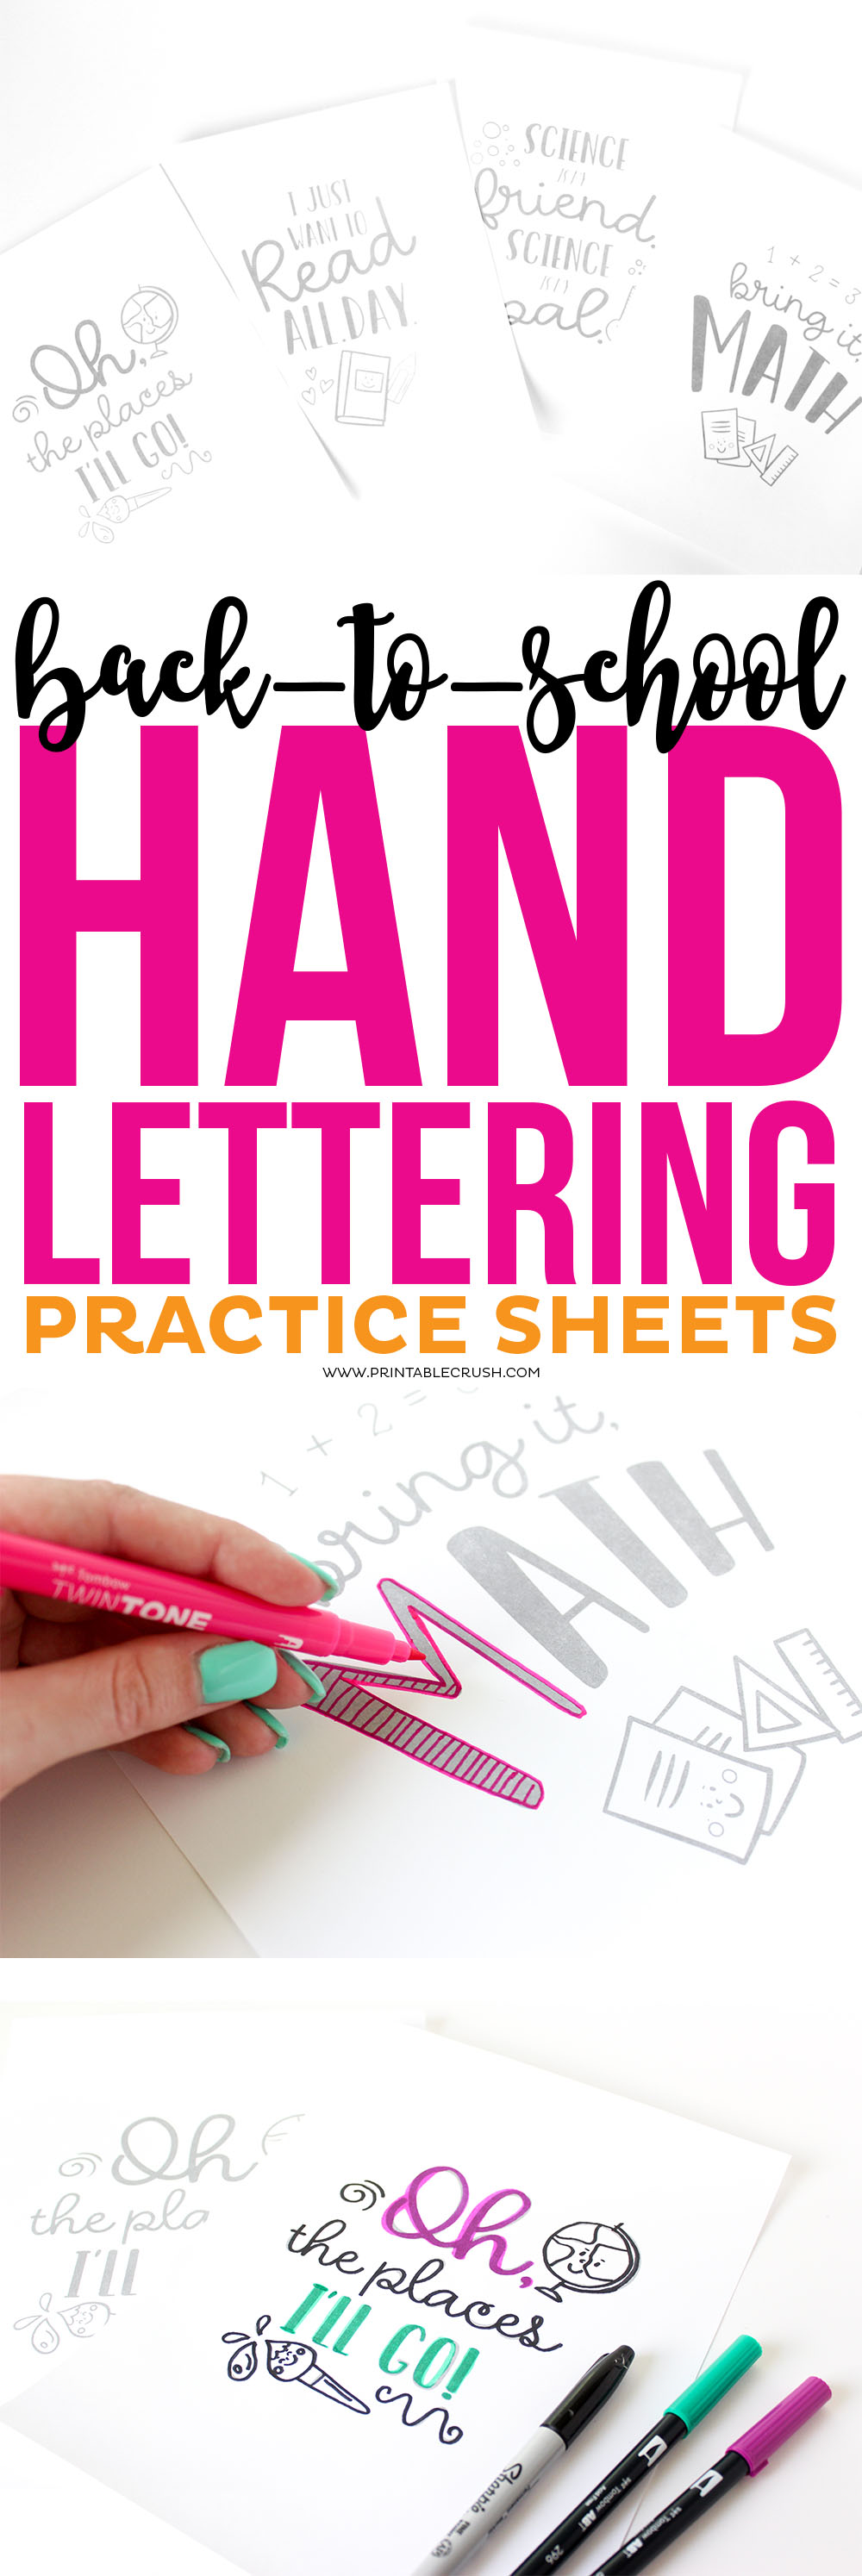 These Back to School Hand Lettering Practice Sheets are great for kids and parents who want to start lettering! Download all four designs for FREE! via @printablecrush